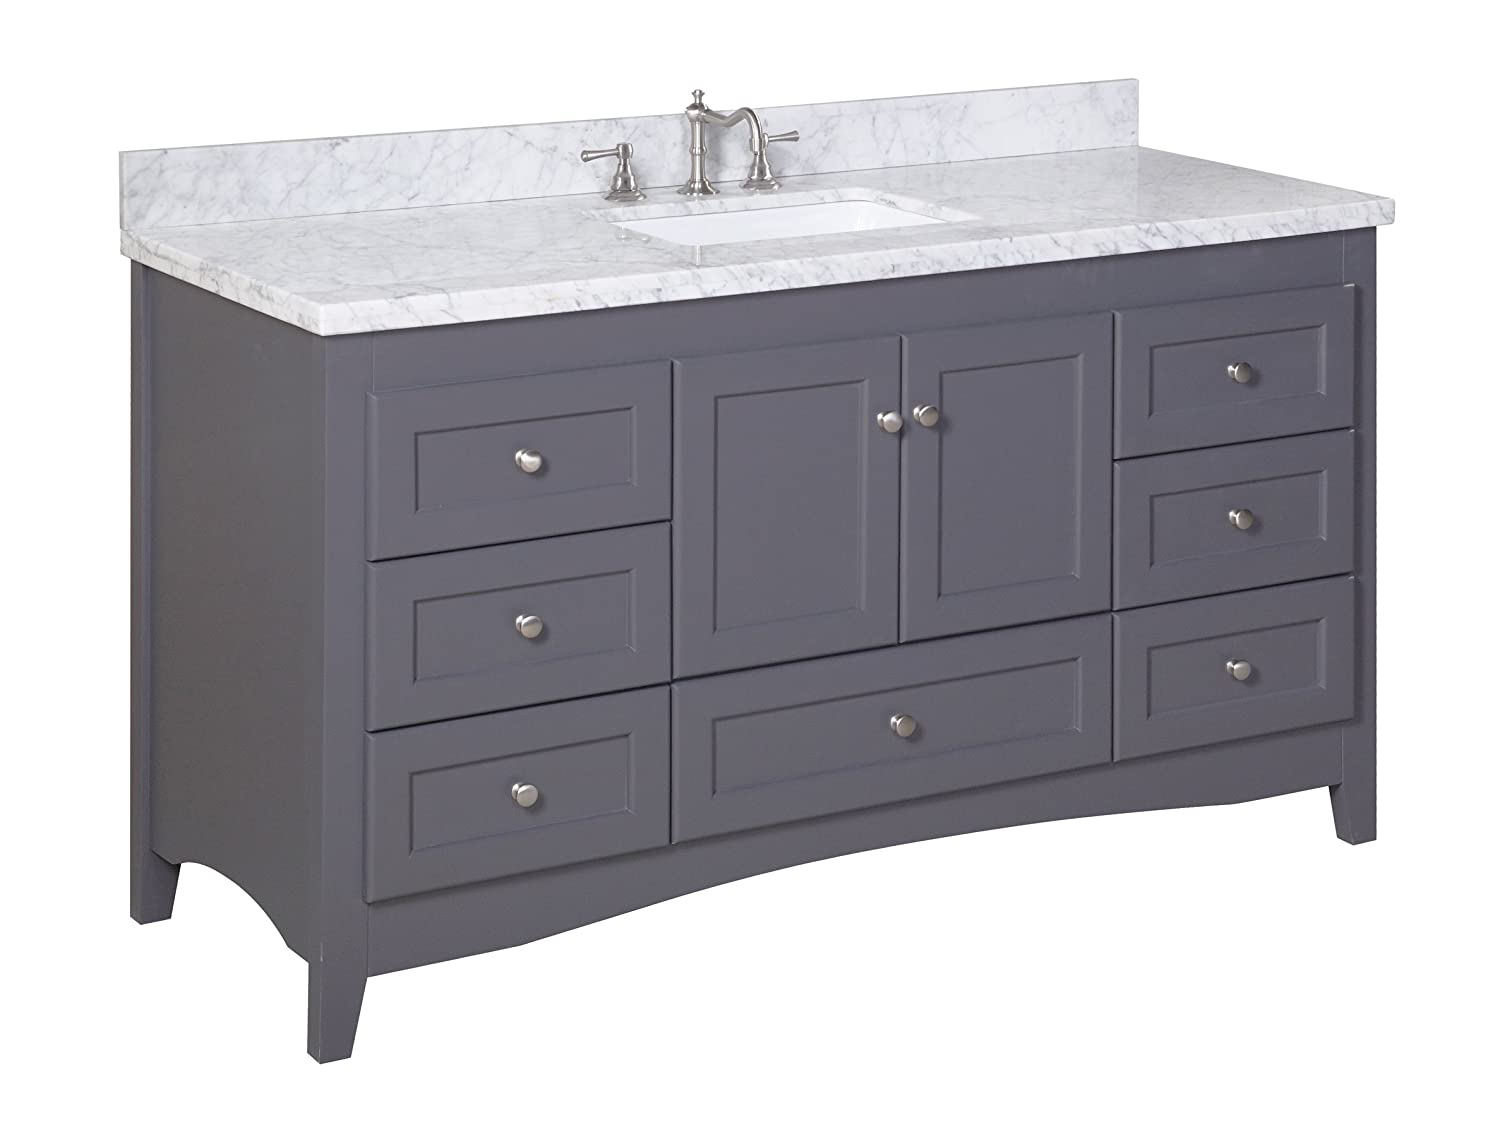 Abbey 60-inch Single Bathroom Vanity Carrara Charcoal Gray Includes Gray Shaker Style Cabinet with Soft Close Drawers Doors, Italian Carrara Marble Top and Rectangular Ceramic Sink